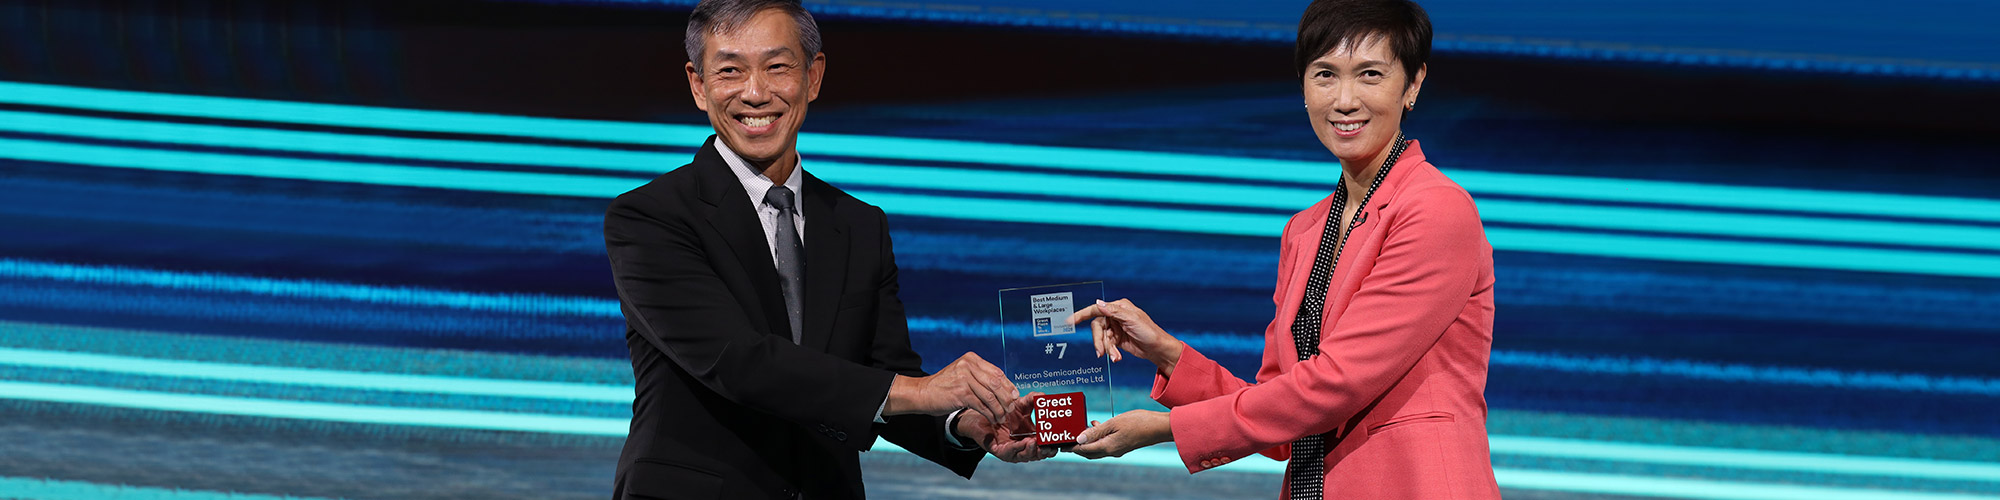 Chen Kok Sing, Frontend Manufacturing Corporate Vice President and Singapore Country Manager, on stage with Josephine Teo, Minister for Manpower, Singapore